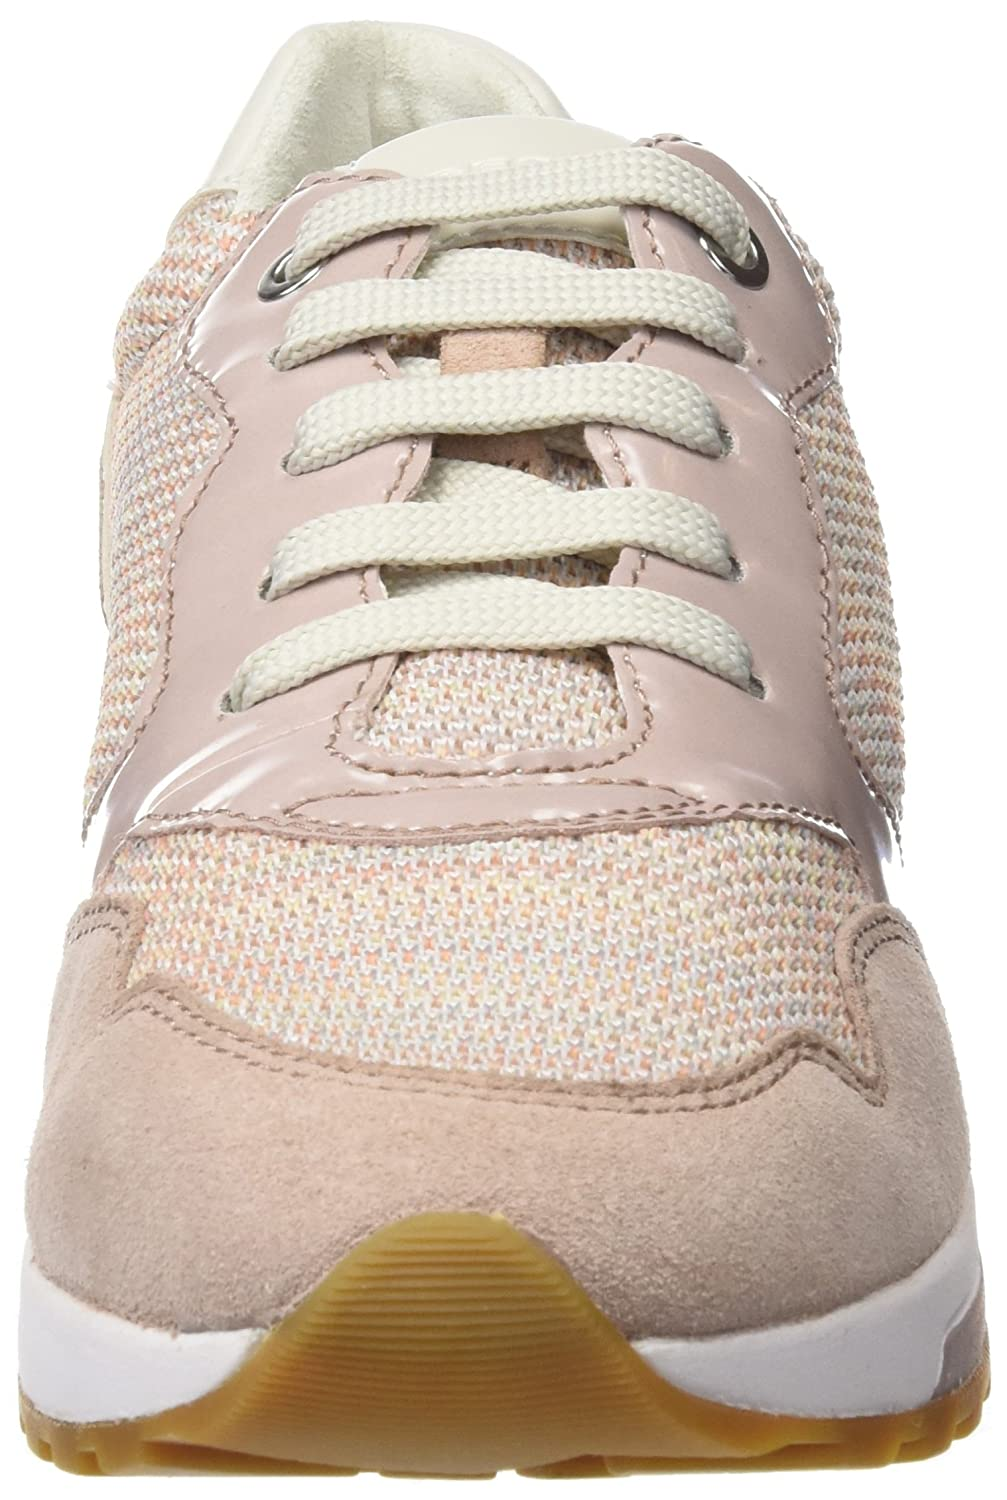 Geox Damen Pink D Phyteam B Sneaker Pink Damen (Salmon/Antique Rose) eb615d